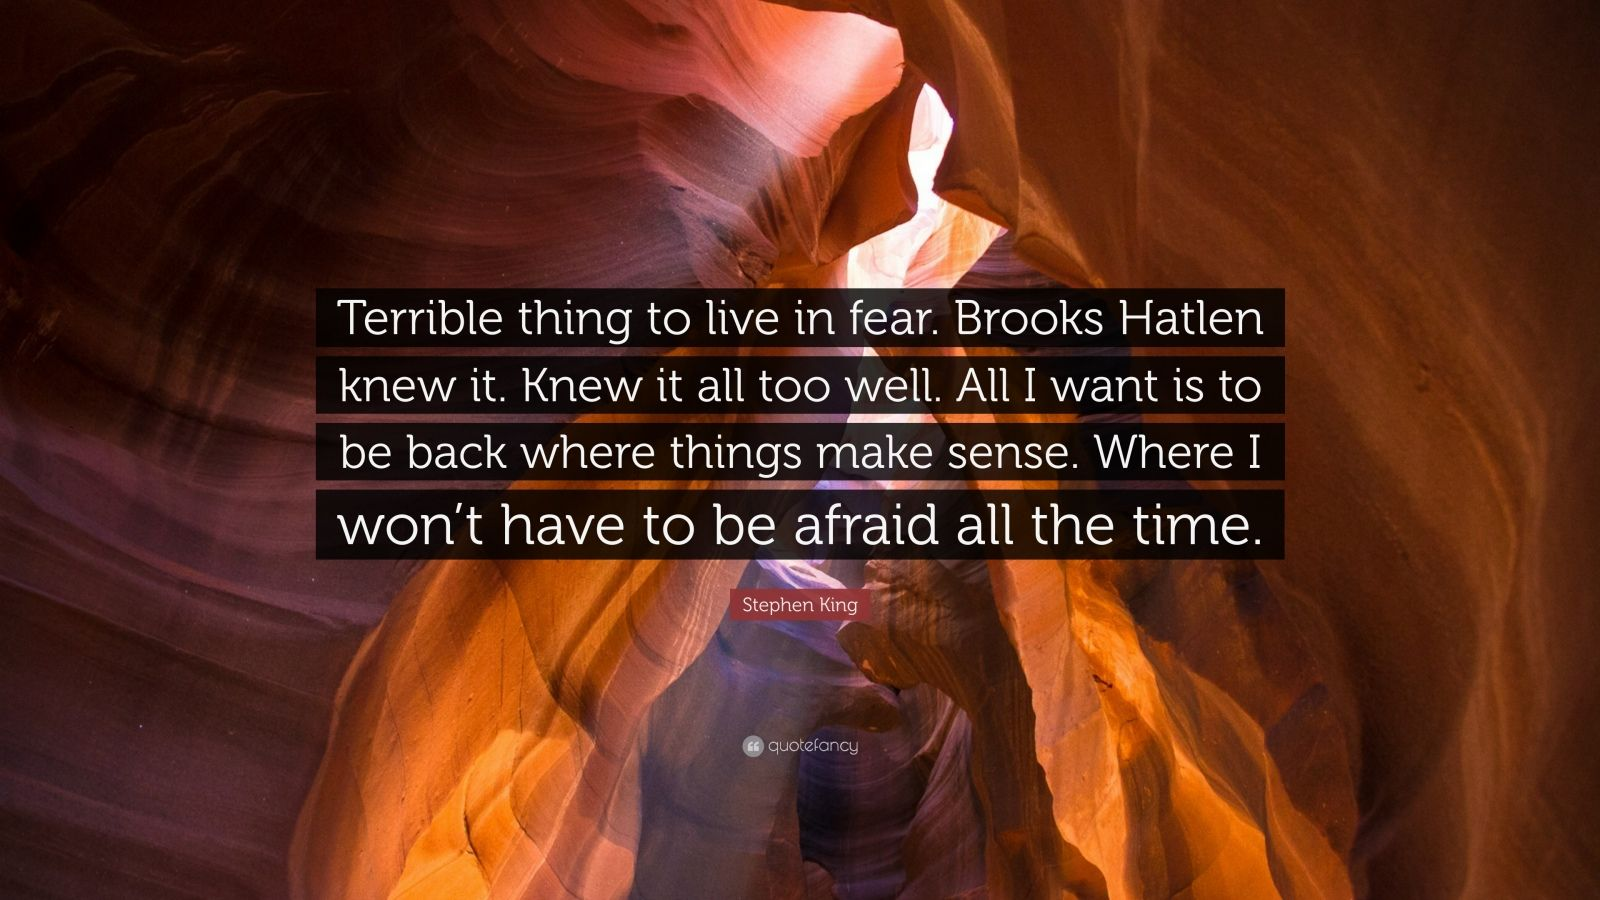 """Stephen King Quote: """"Terrible thing to live in fear. Brooks Hatlen knew it. Knew it all too well. All I want is to be back where things make sense. Where I won't have to be afraid all the time."""""""